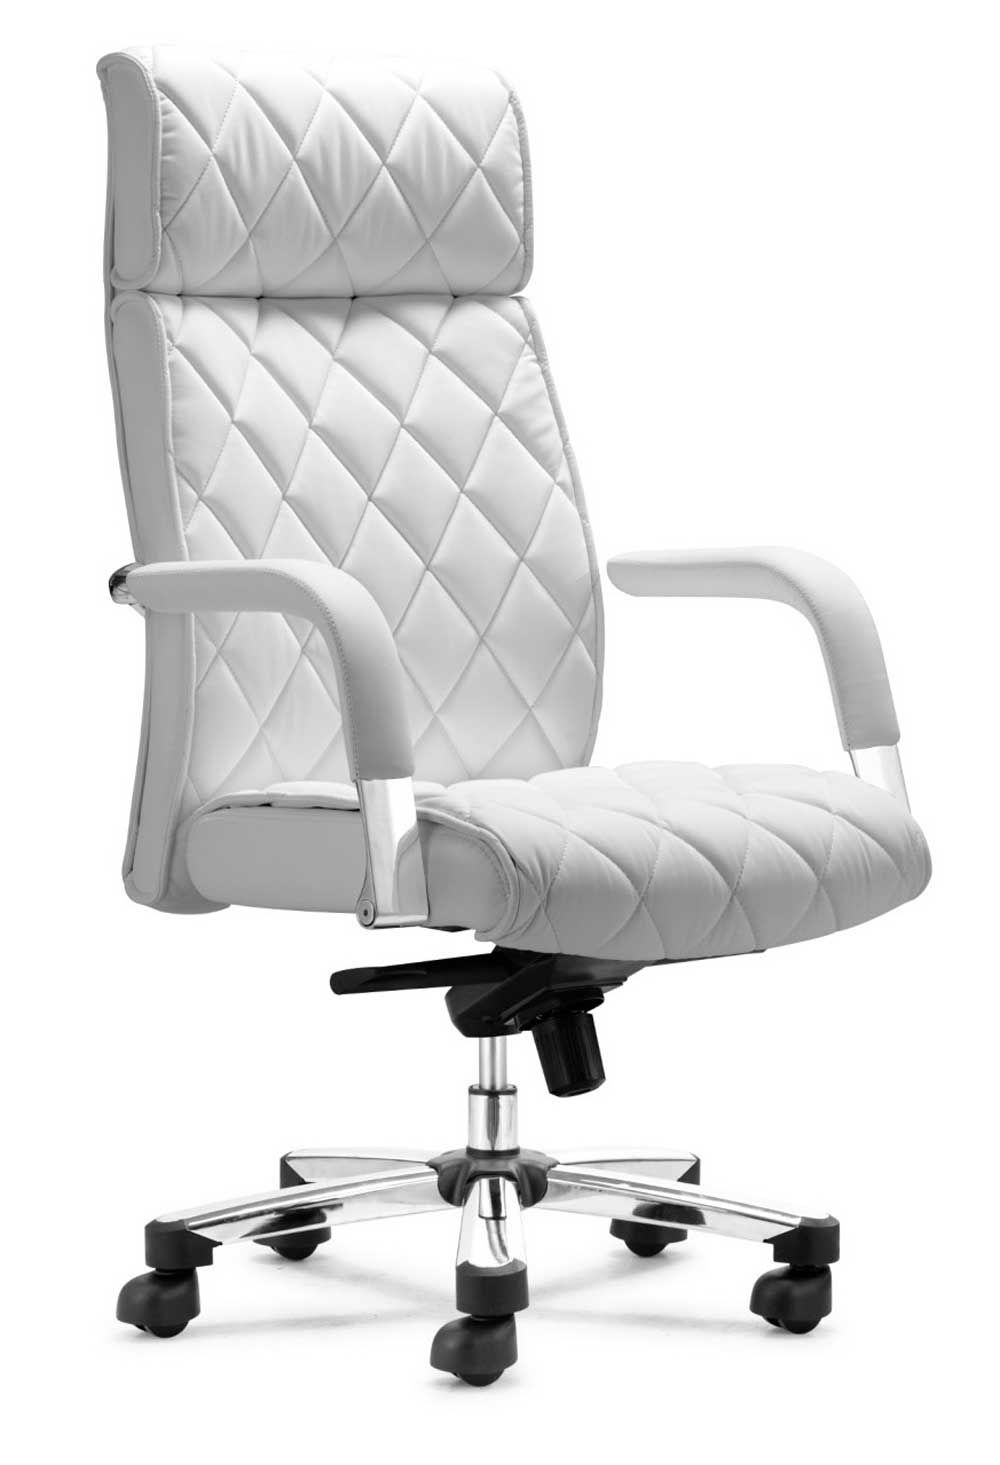 Zuo Modern White Regal High Back Leather Office Chair